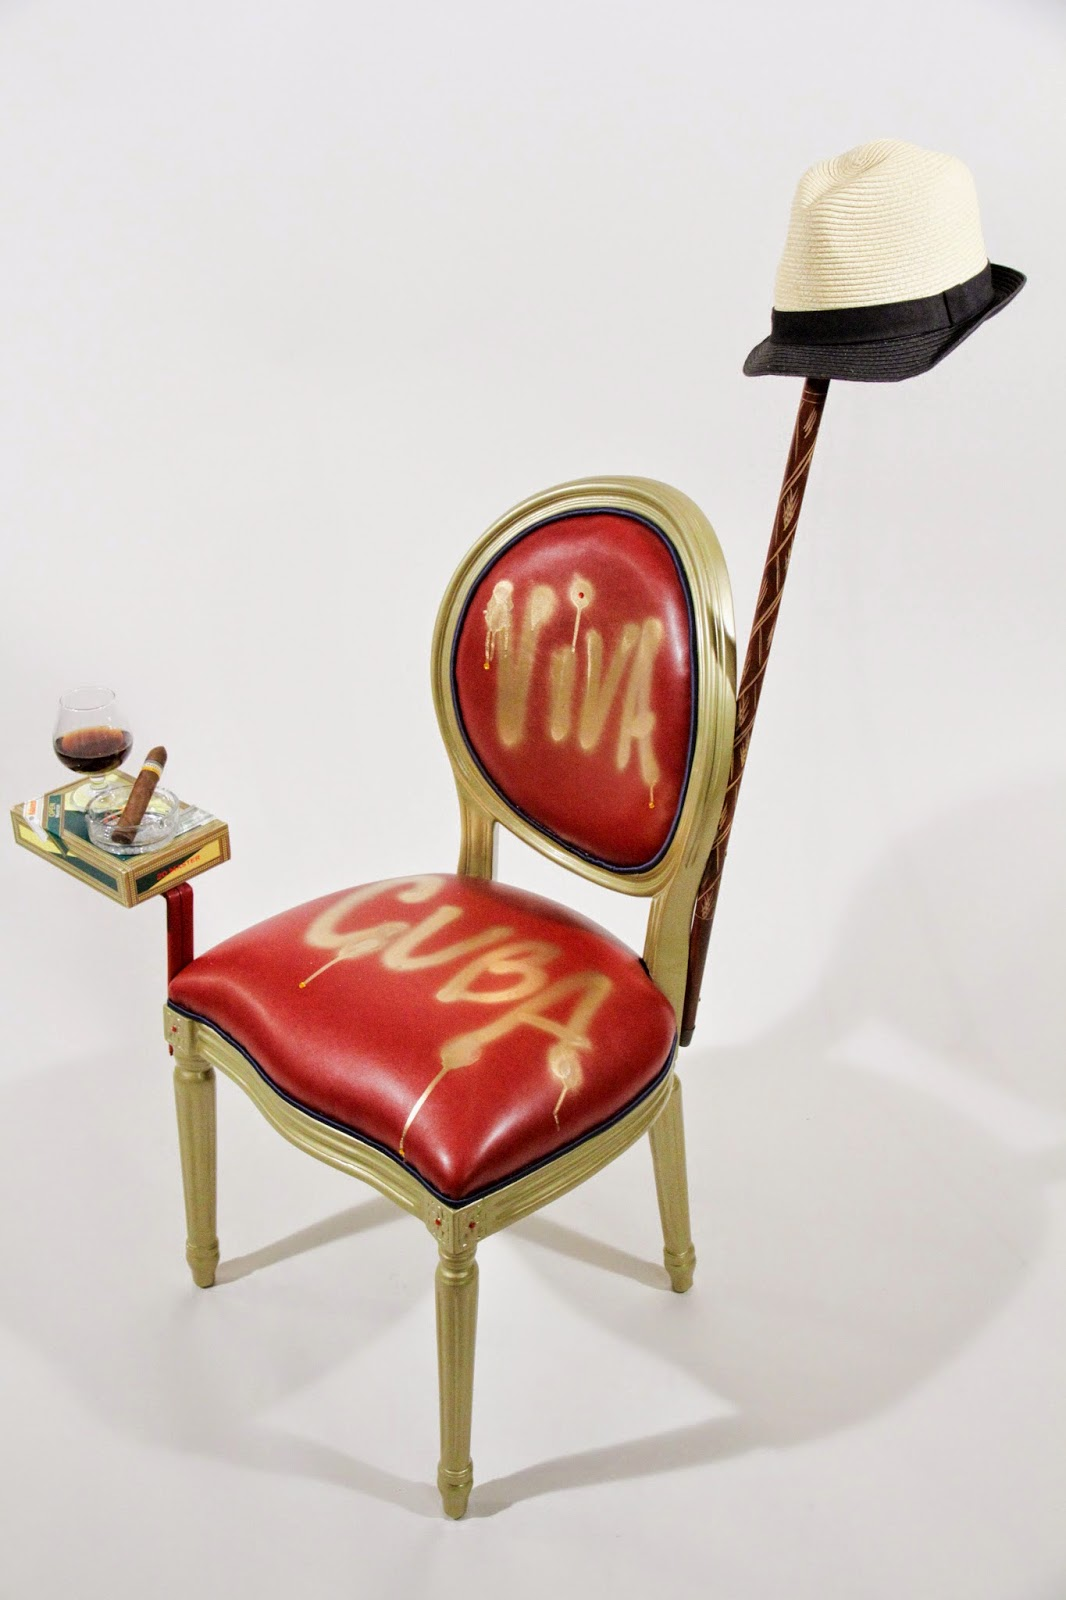 Given The Recent Enthusiasm And Interest In Cuba She Felt This Was The  Perfect Theme For Her Chair Design.